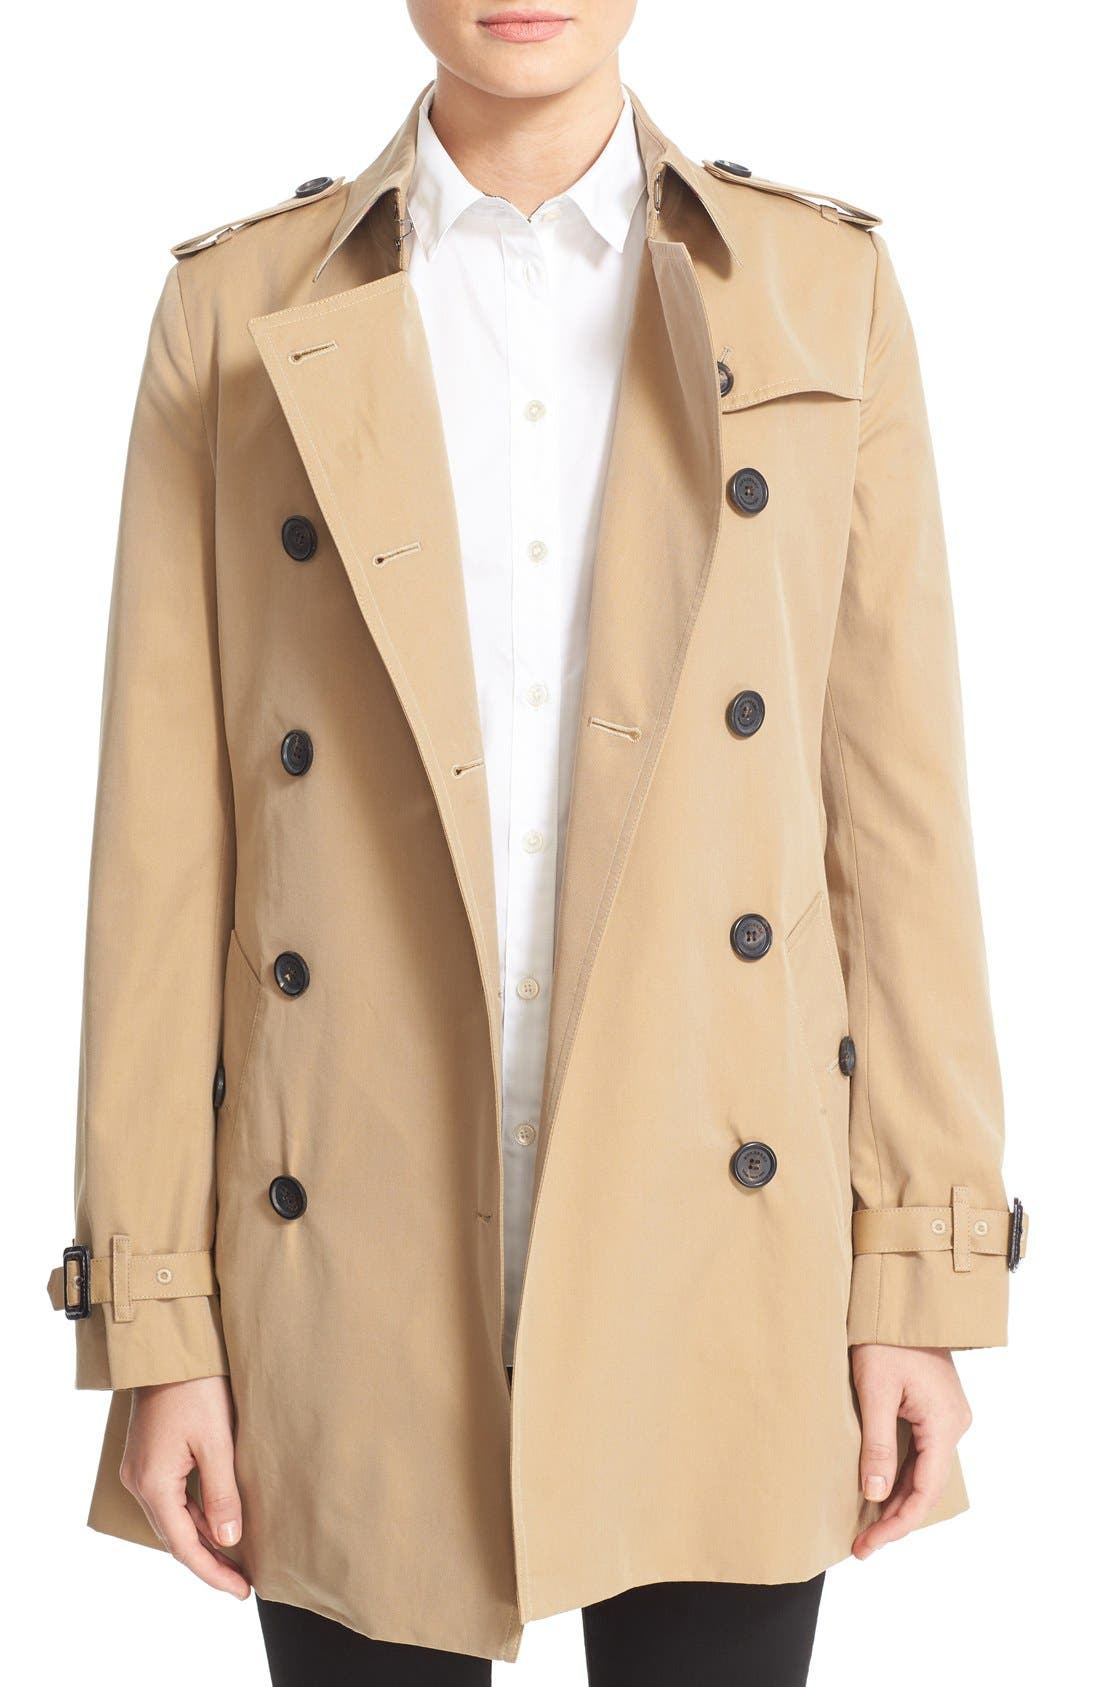 Kensington Short Trench Coat,                             Main thumbnail 1, color,                             HONEY